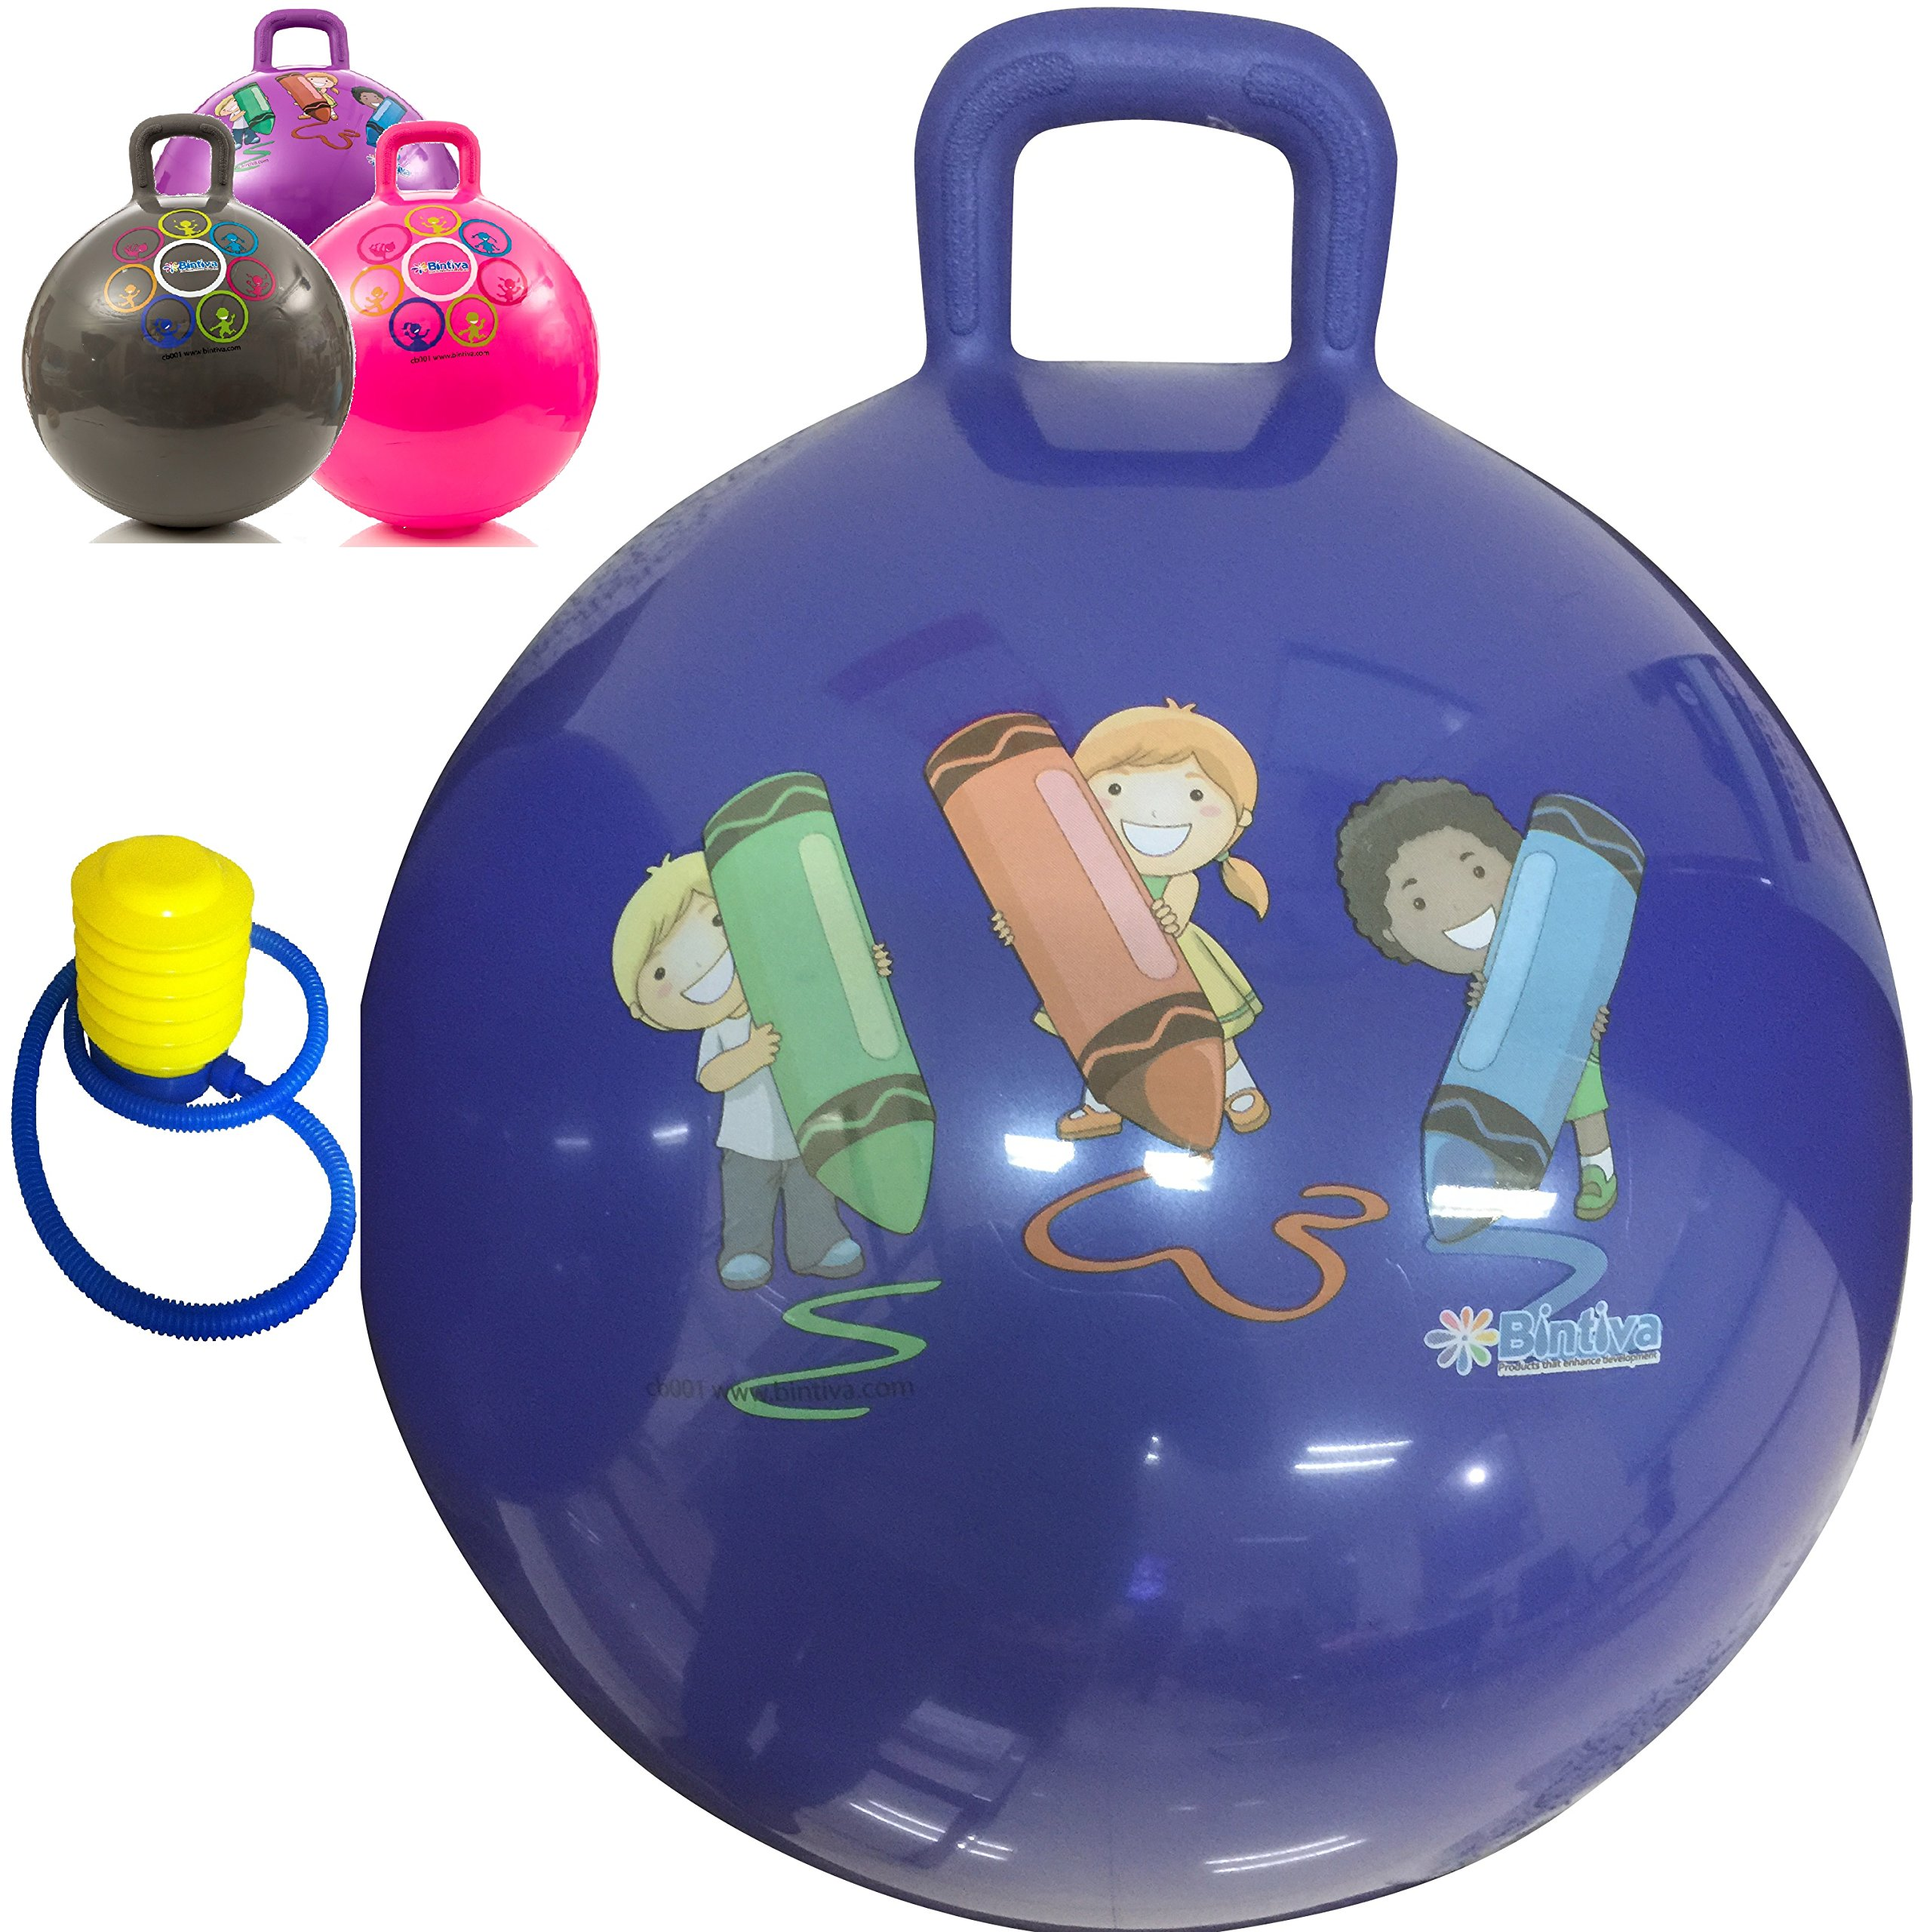 Hippity Hop 45 cm / 18 Inch Diameter Including Free Foot Pump, for Children Ages 3-6 Space Hopper, Hop Ball Bouncing Toy - 1 Ball by bintiva